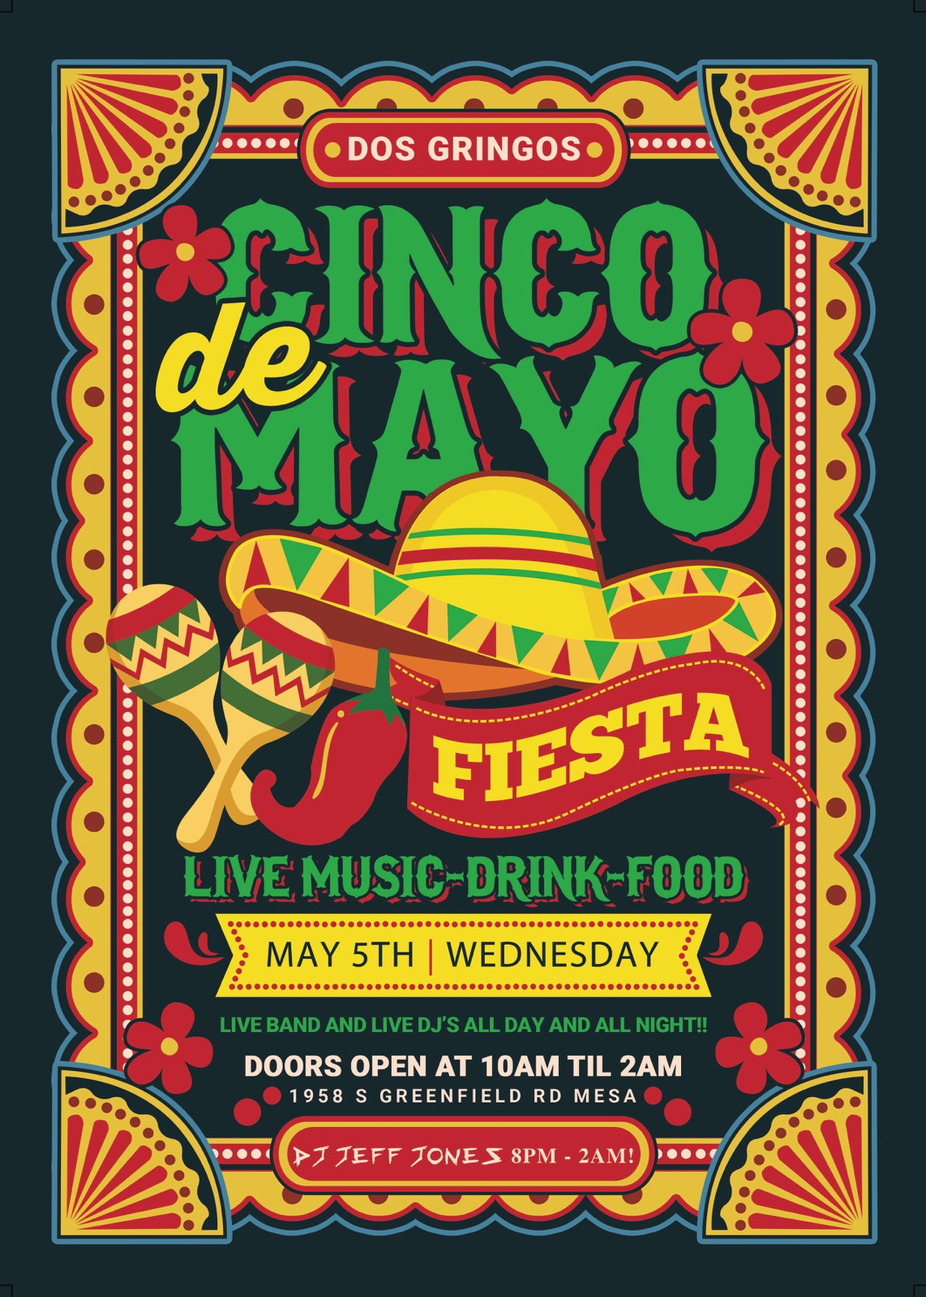 Cinco De Mayo Evening event photo